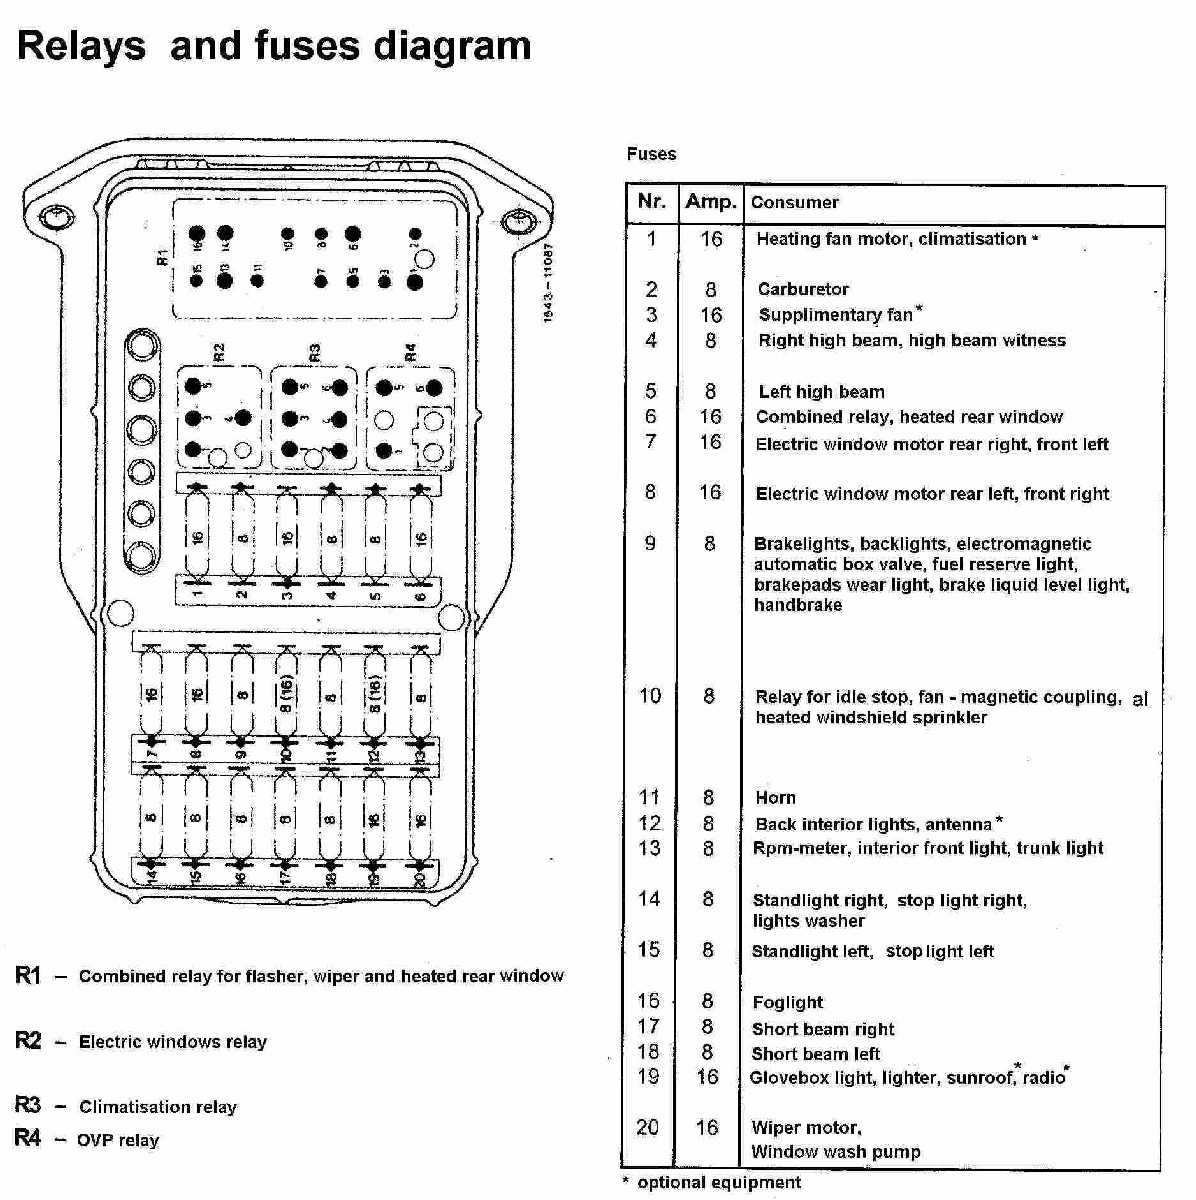 mercedes fuse box - fusebox and wiring diagram wires-x-ray -  wires-x-ray.aigaravenna.it  diagram database - aigaravenna.it